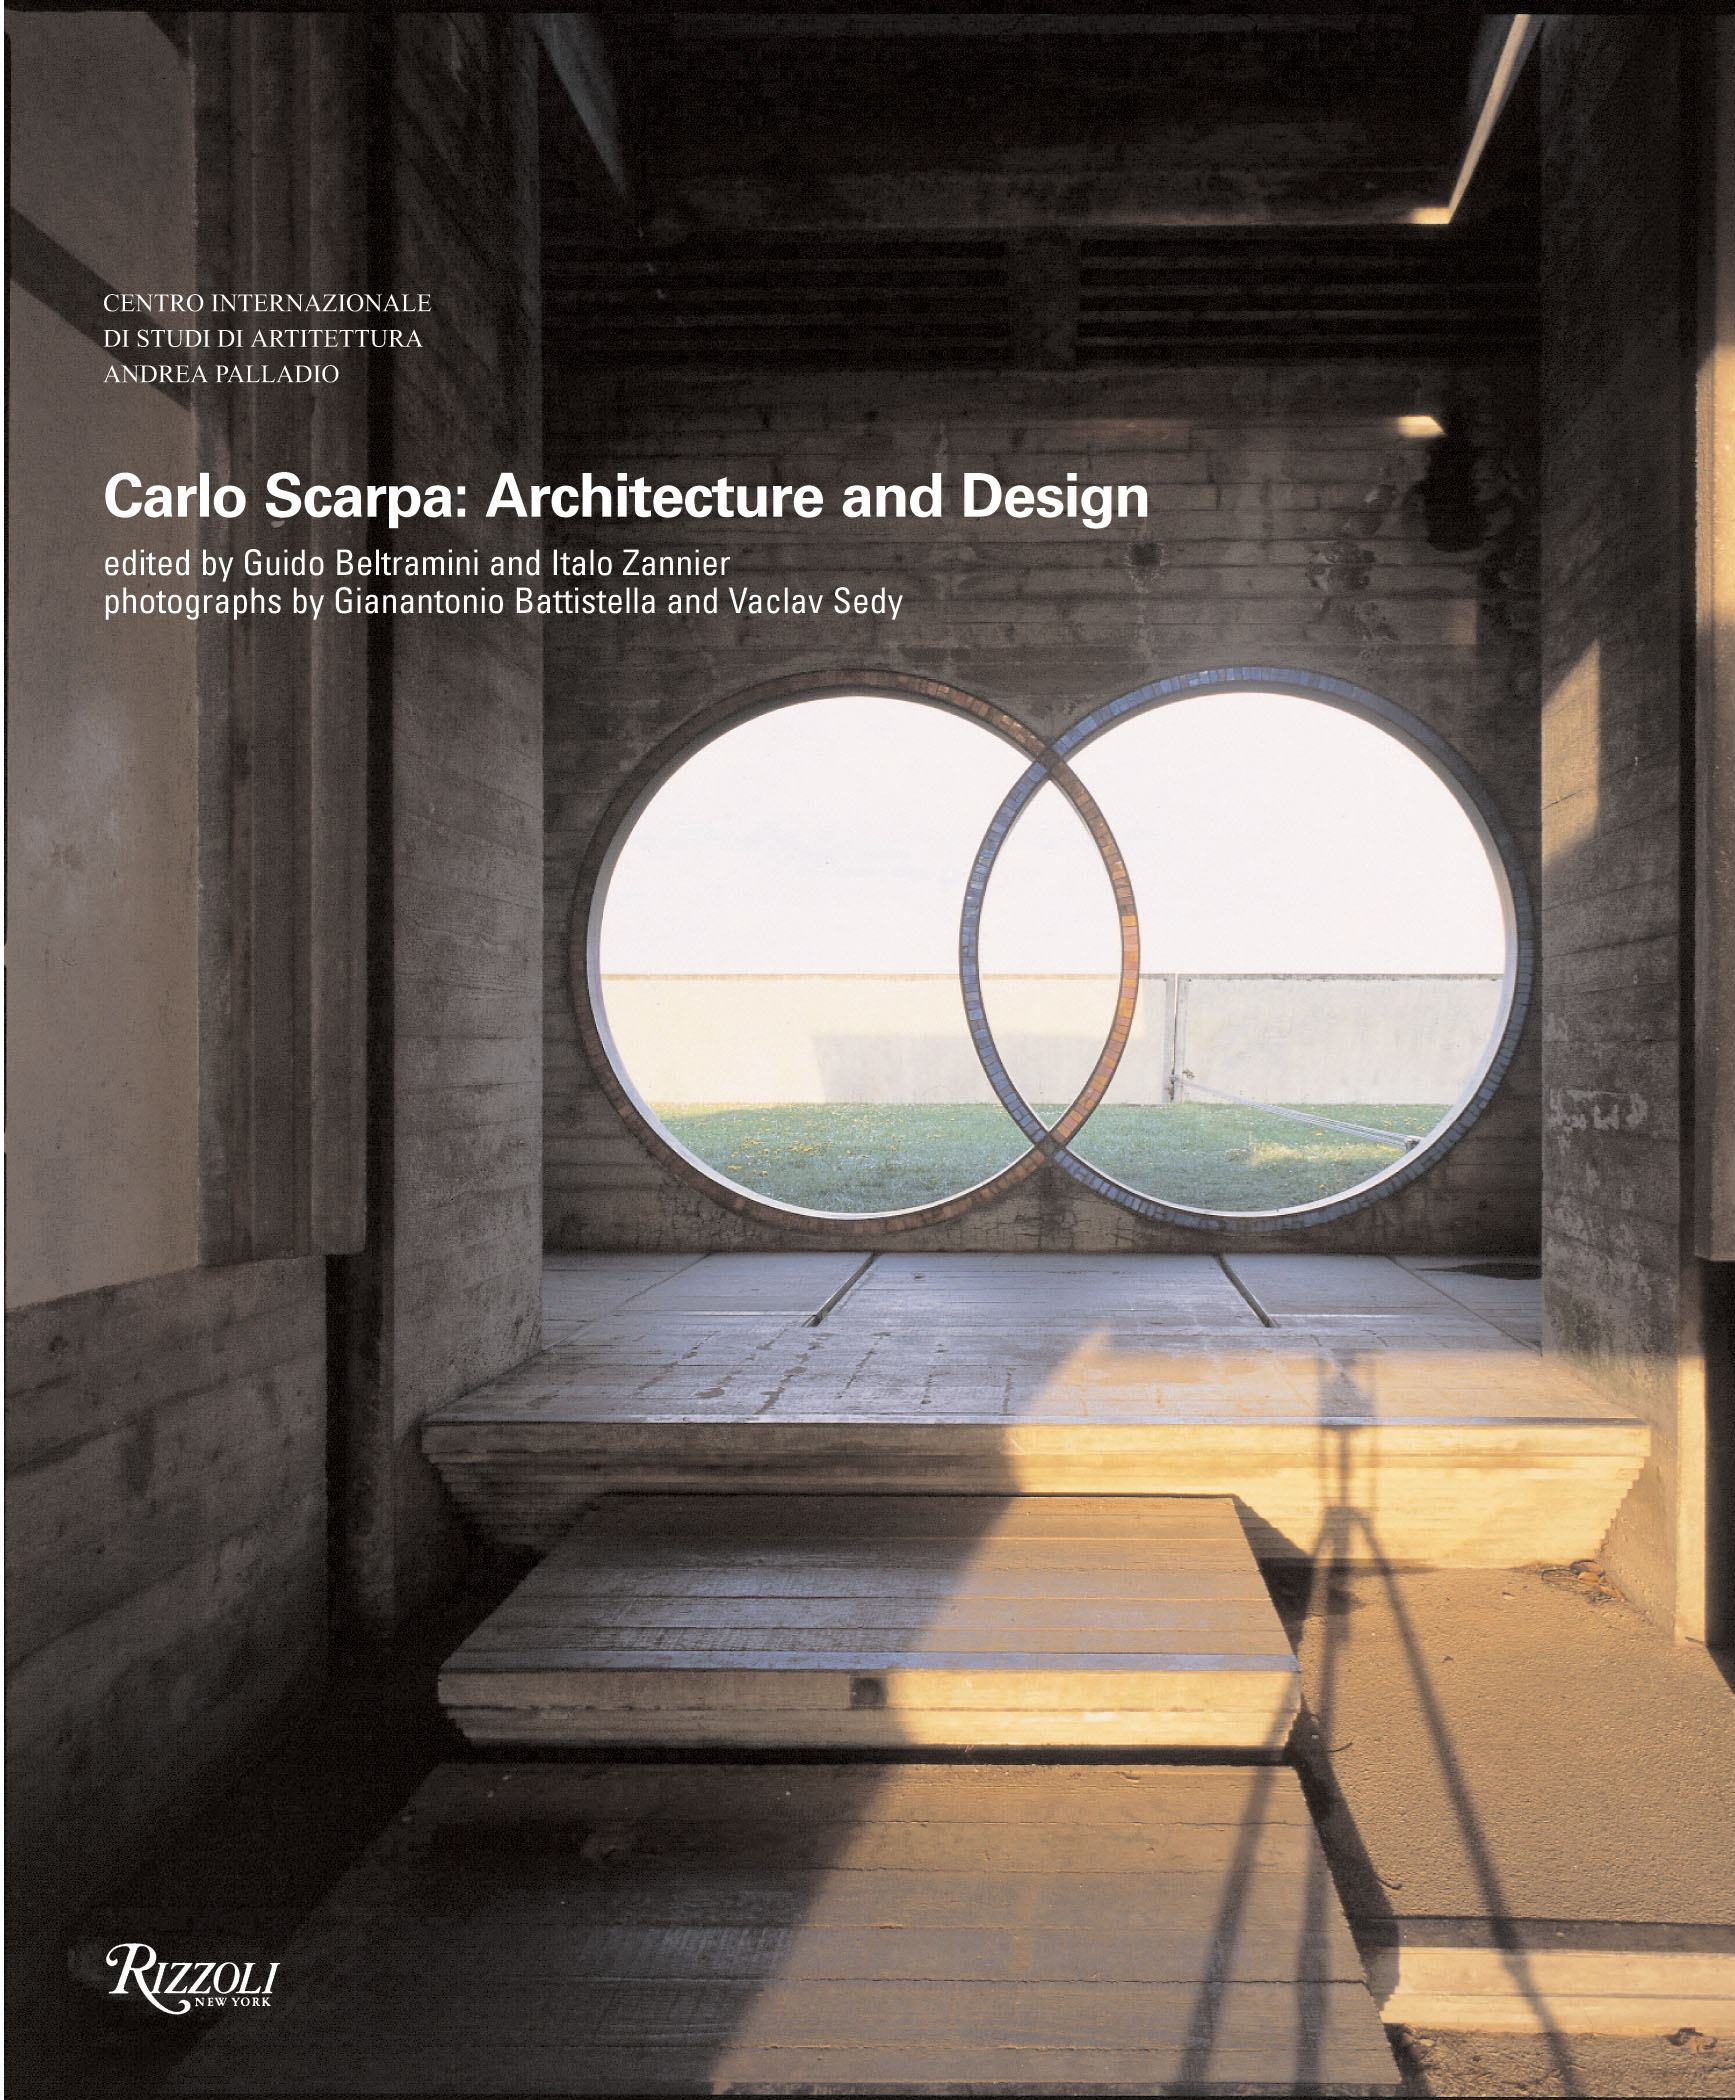 Book review carlo scarpa architecture and design by - Carlo scarpa architecture and design ...